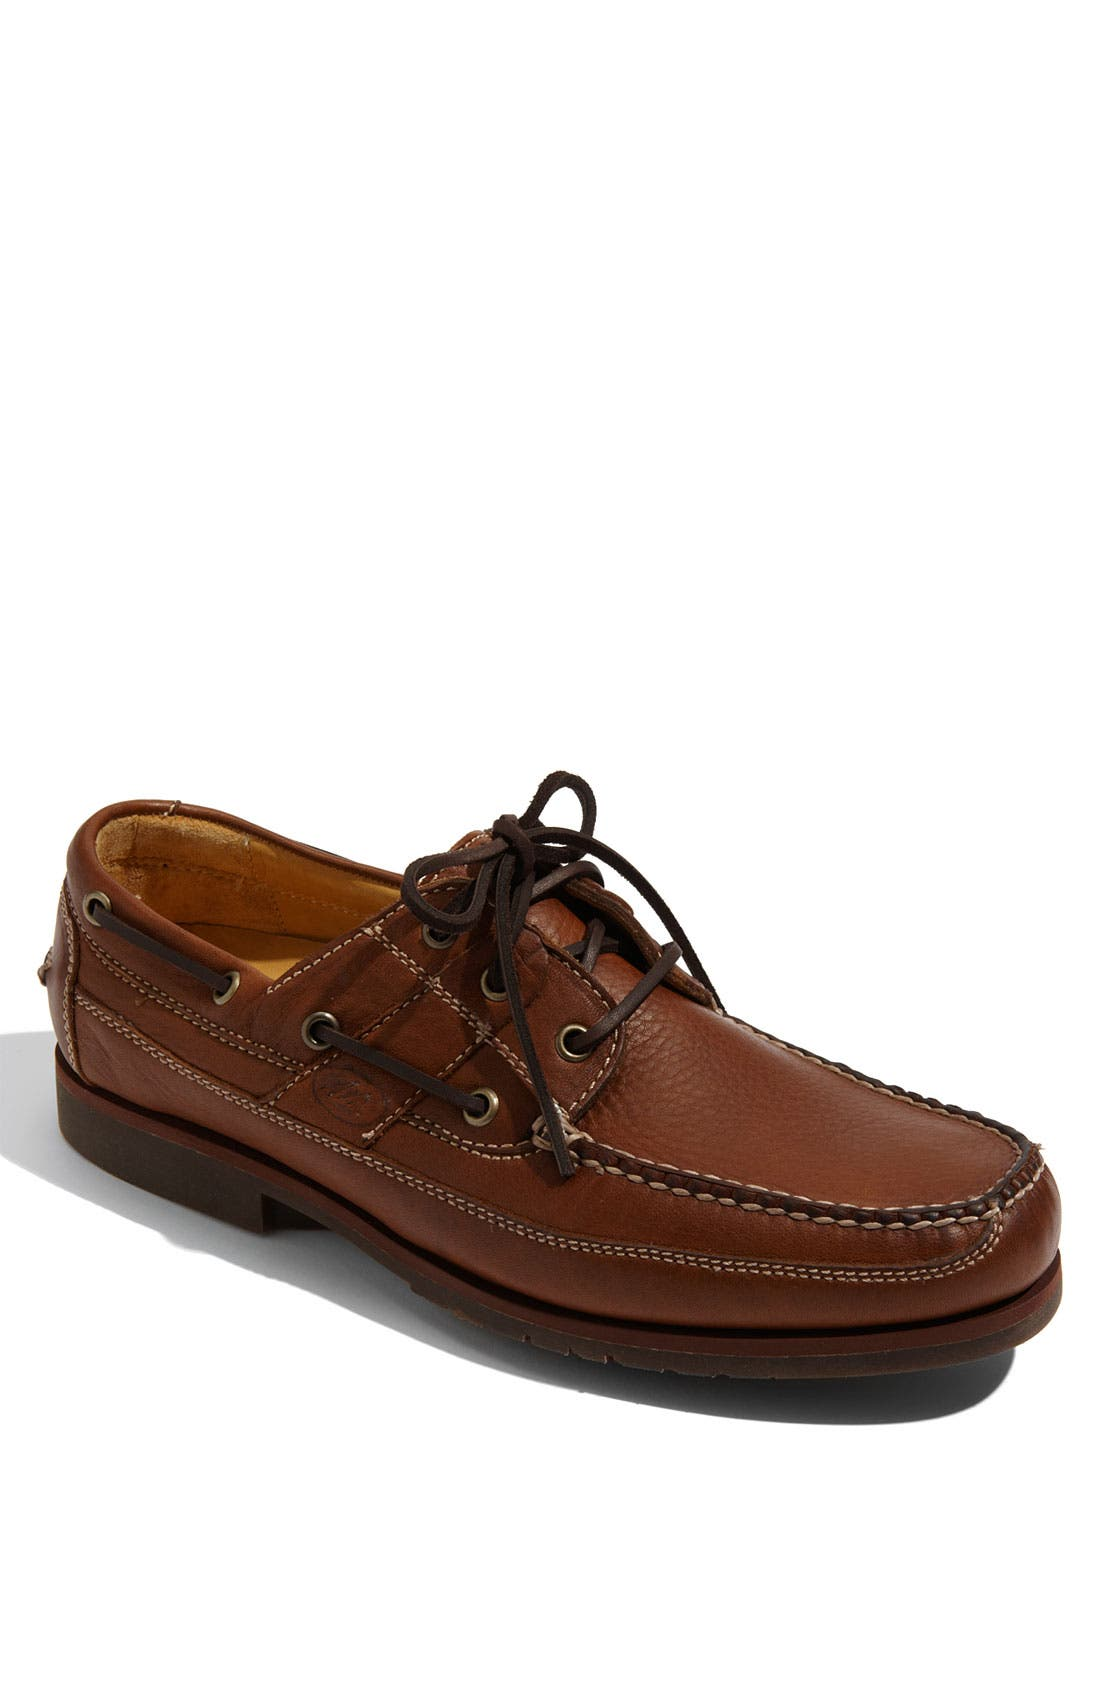 Main Image - Neil M 'Bridgeport' Boat Shoe (Online Only)